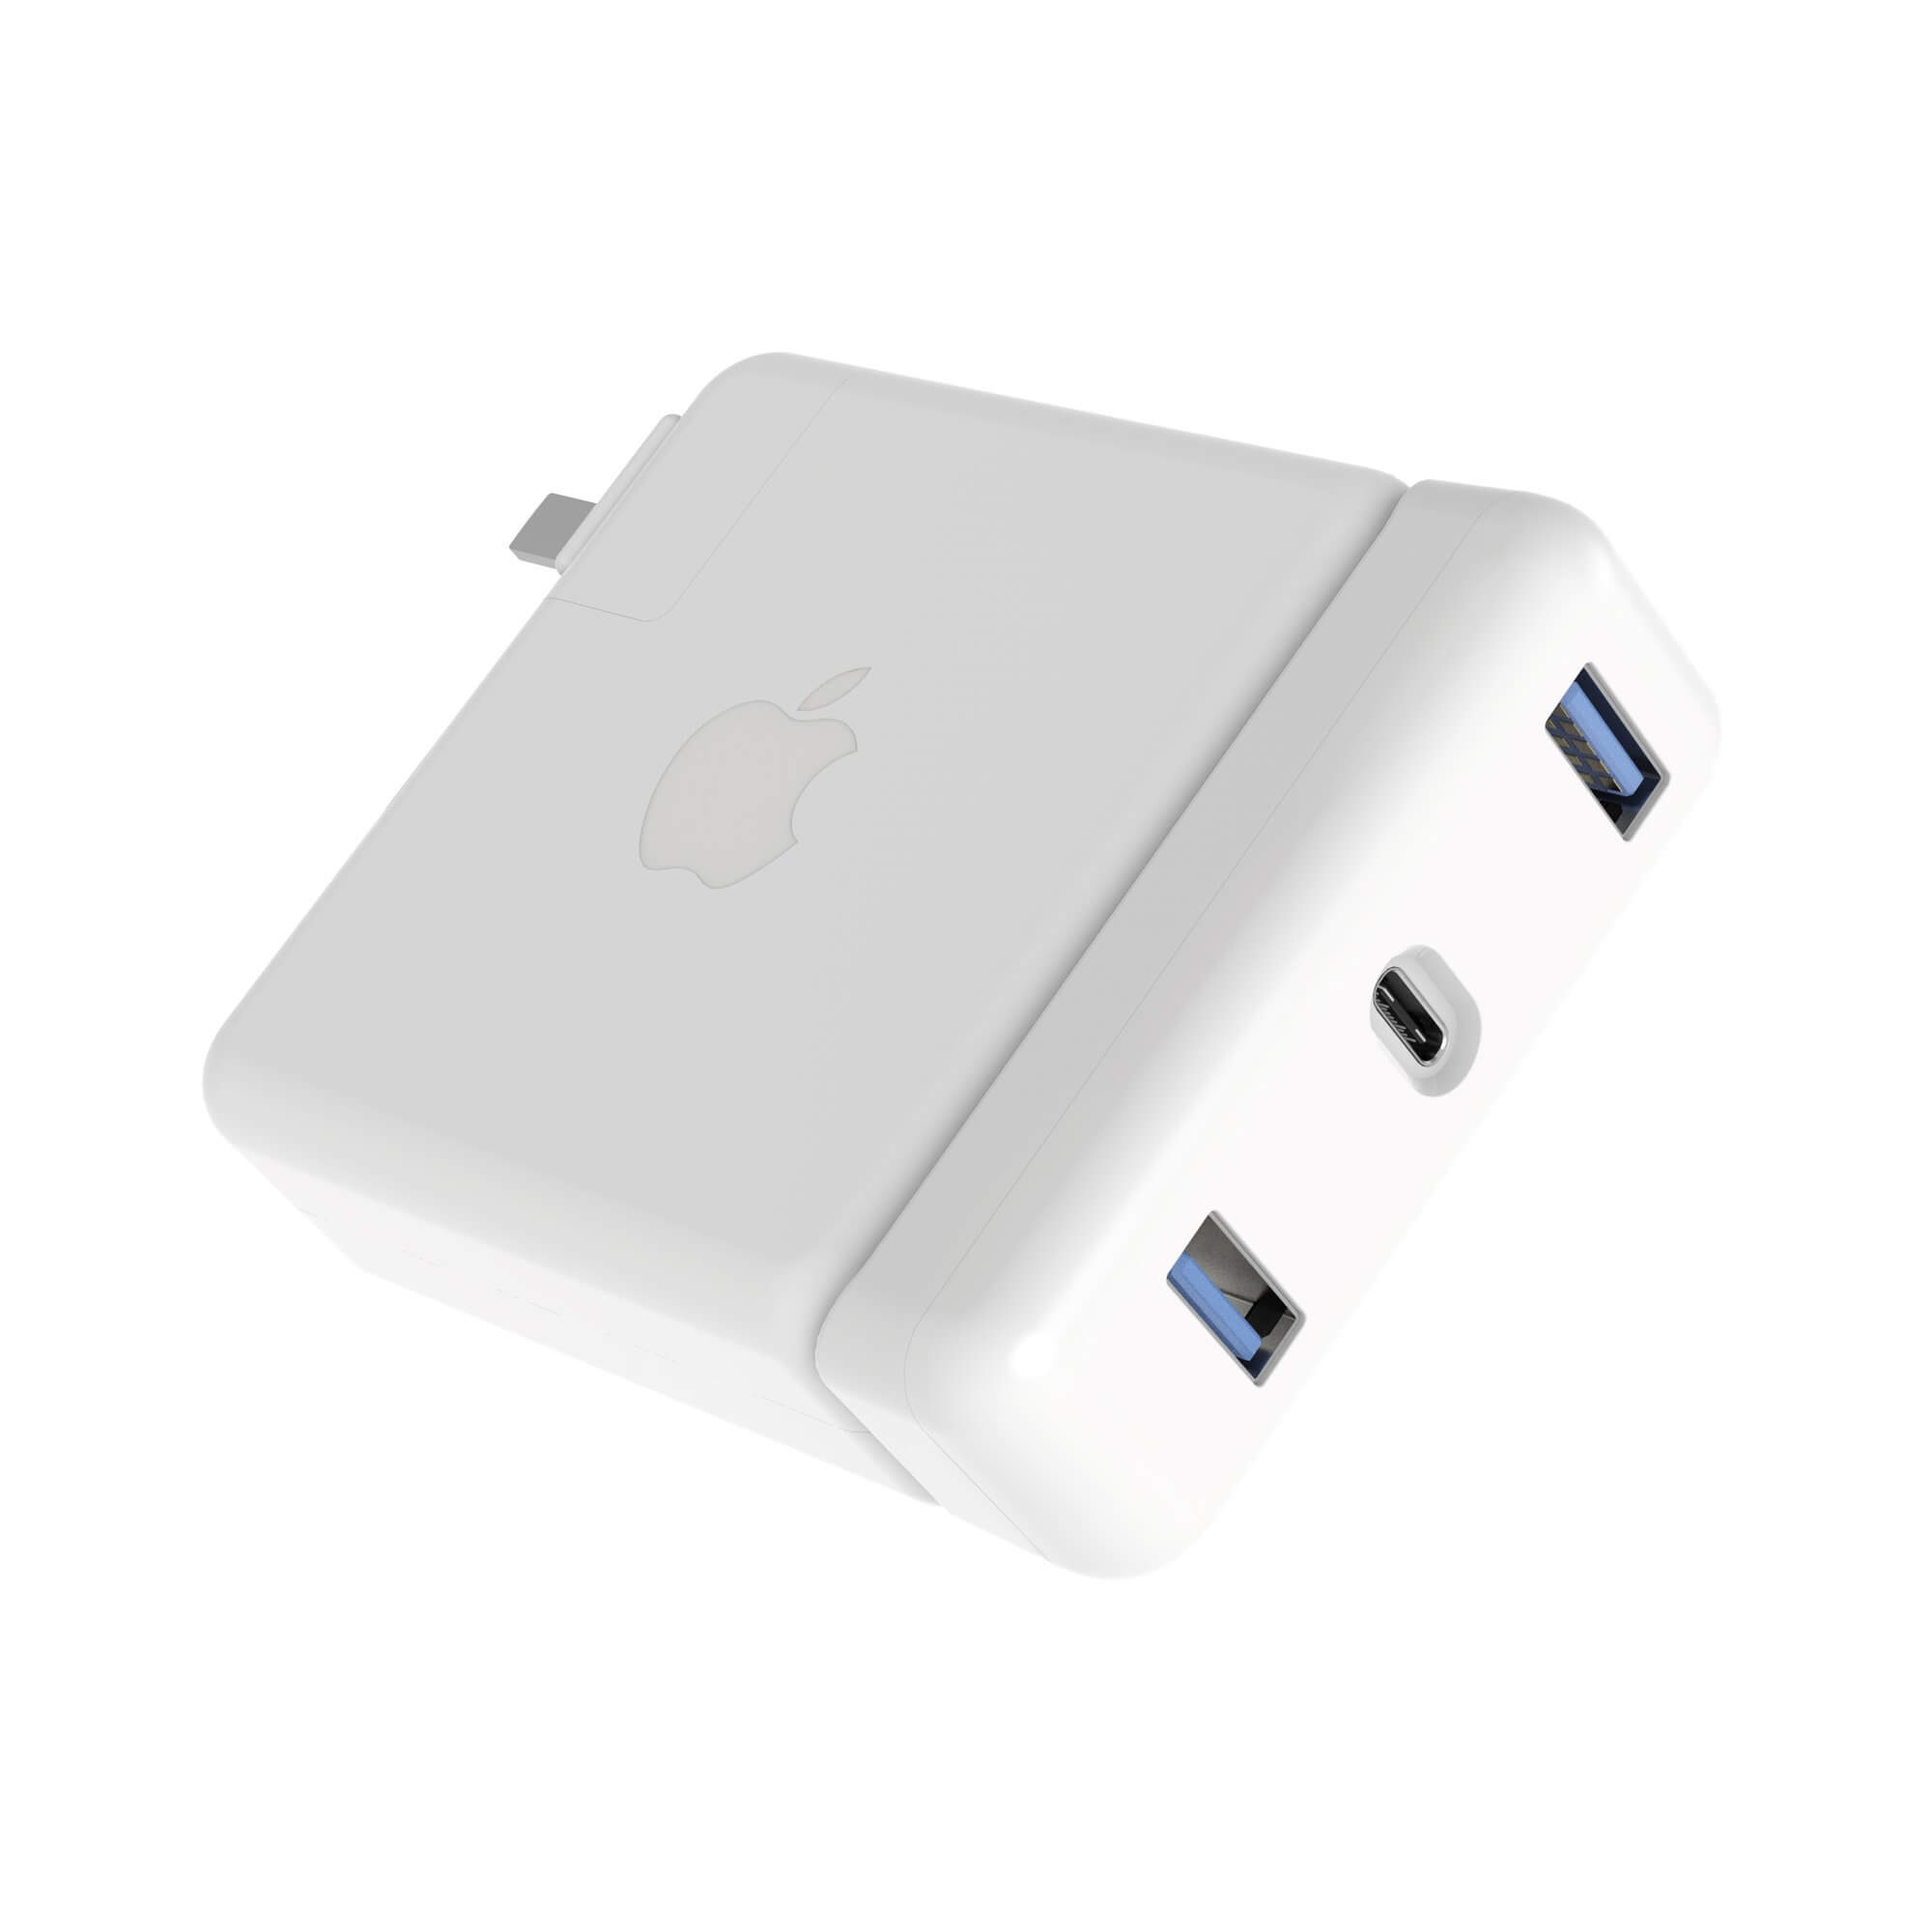 HyperDrive USB-C Hub for MacBook Pro 15 87W Power Adapter (white)